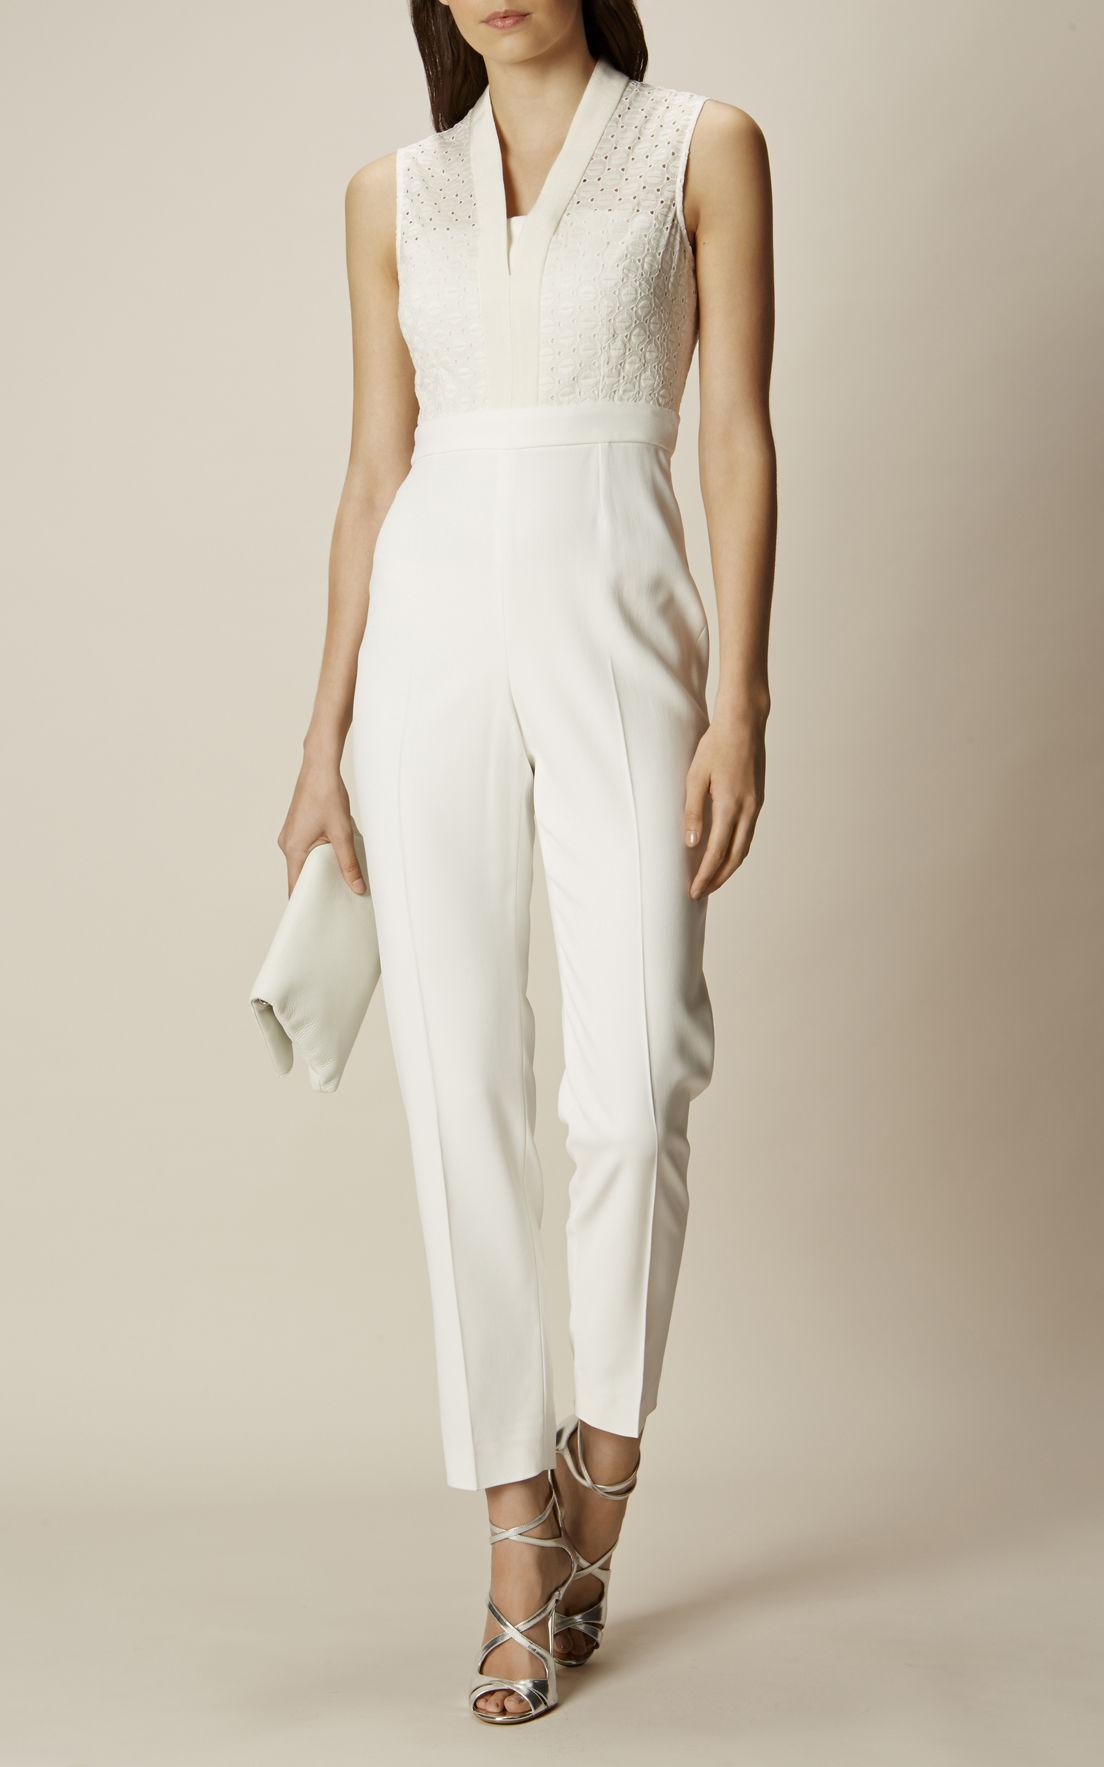 aa0748c1077 Lyst - Karen Millen Tailoring And Lace Jumpsuit - Ivory in White